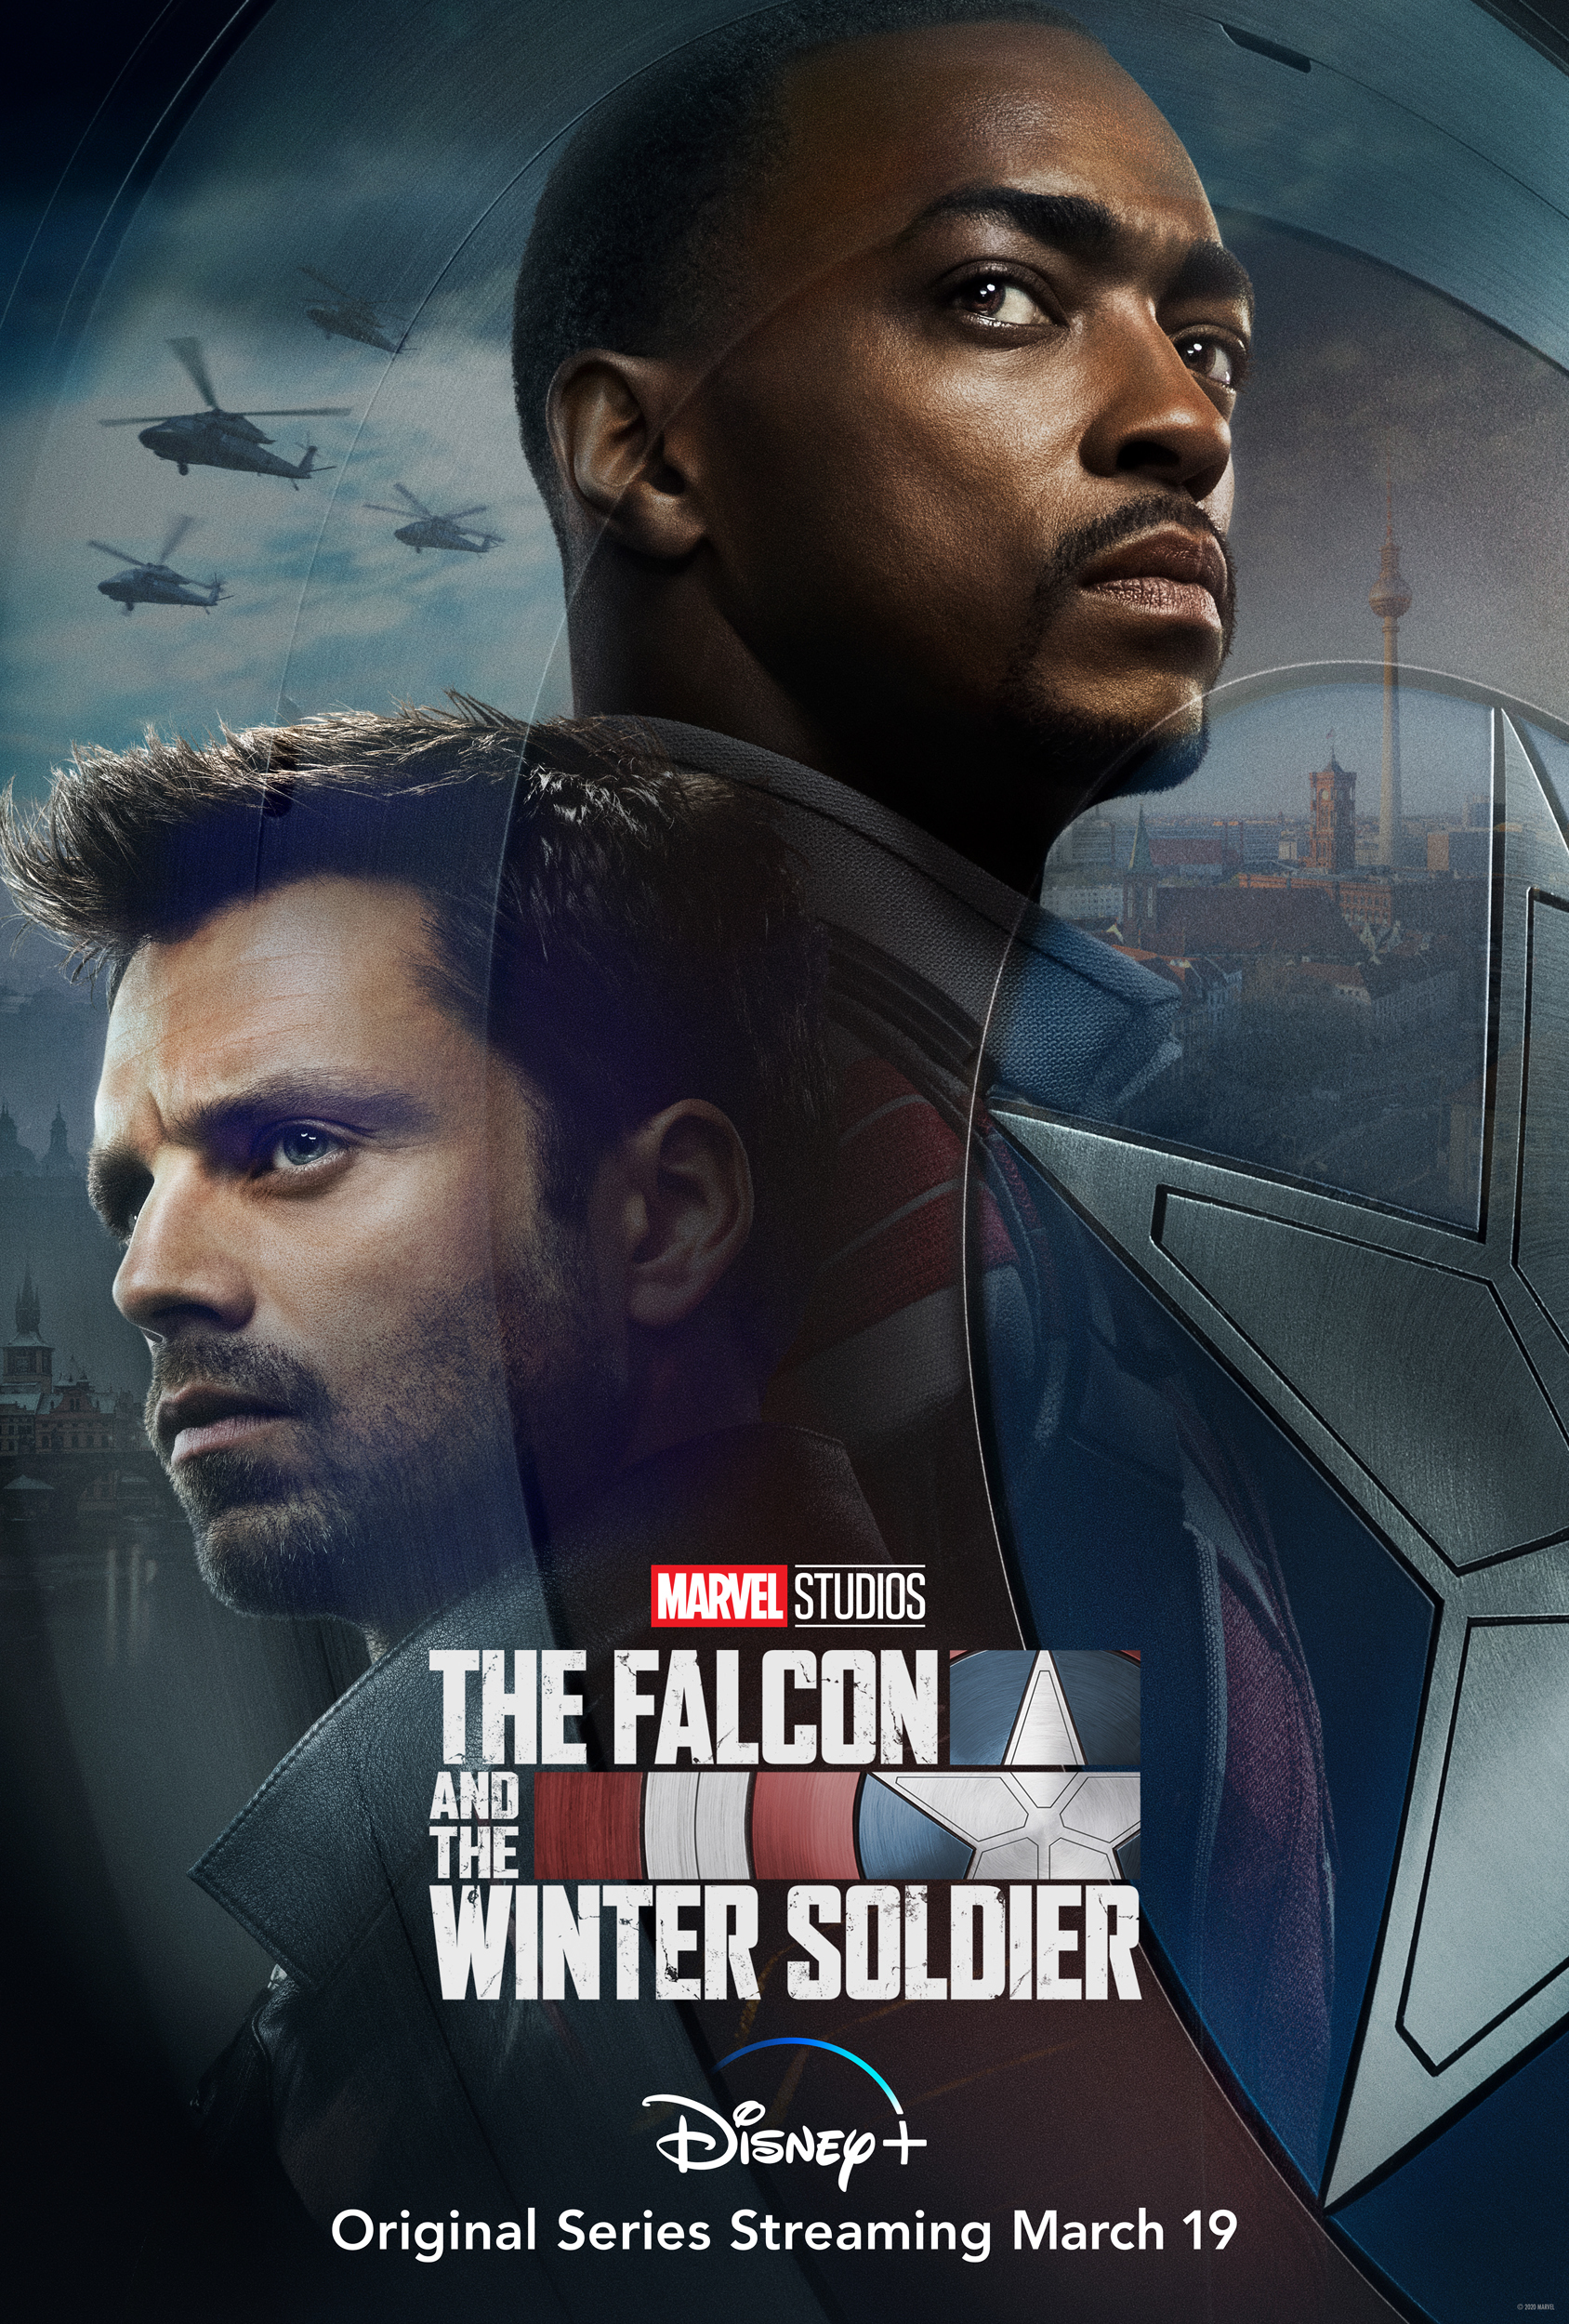 The Falcon And The Winter Soldier Character Poster - Poster